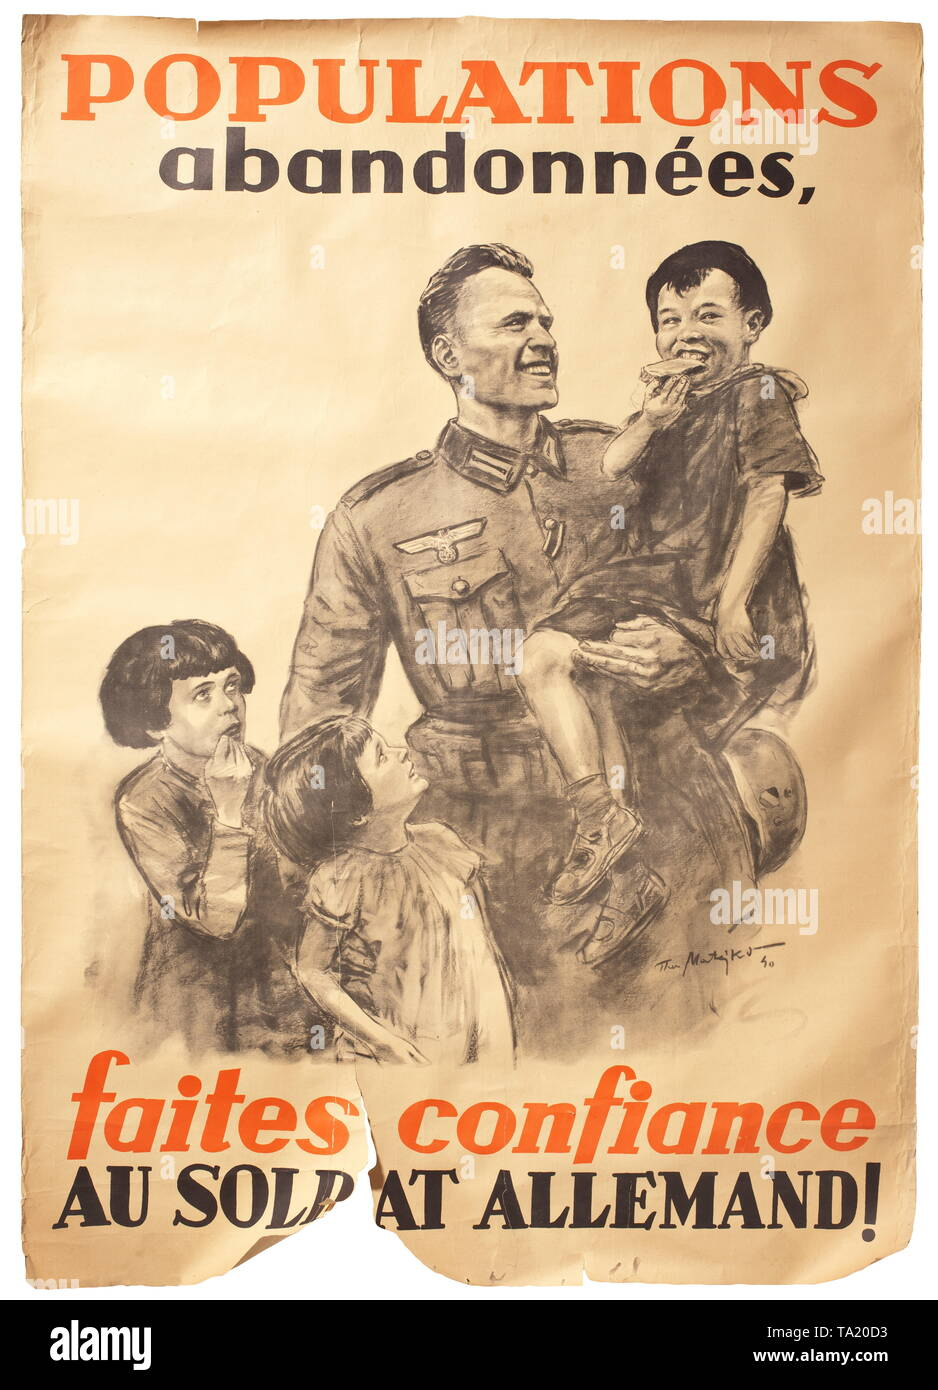 A French Wehrmacht propaganda poster designed by Theo Matejko (1893 - 1946), 1940 historic, historical, 20th century, Editorial-Use-Only - Stock Image